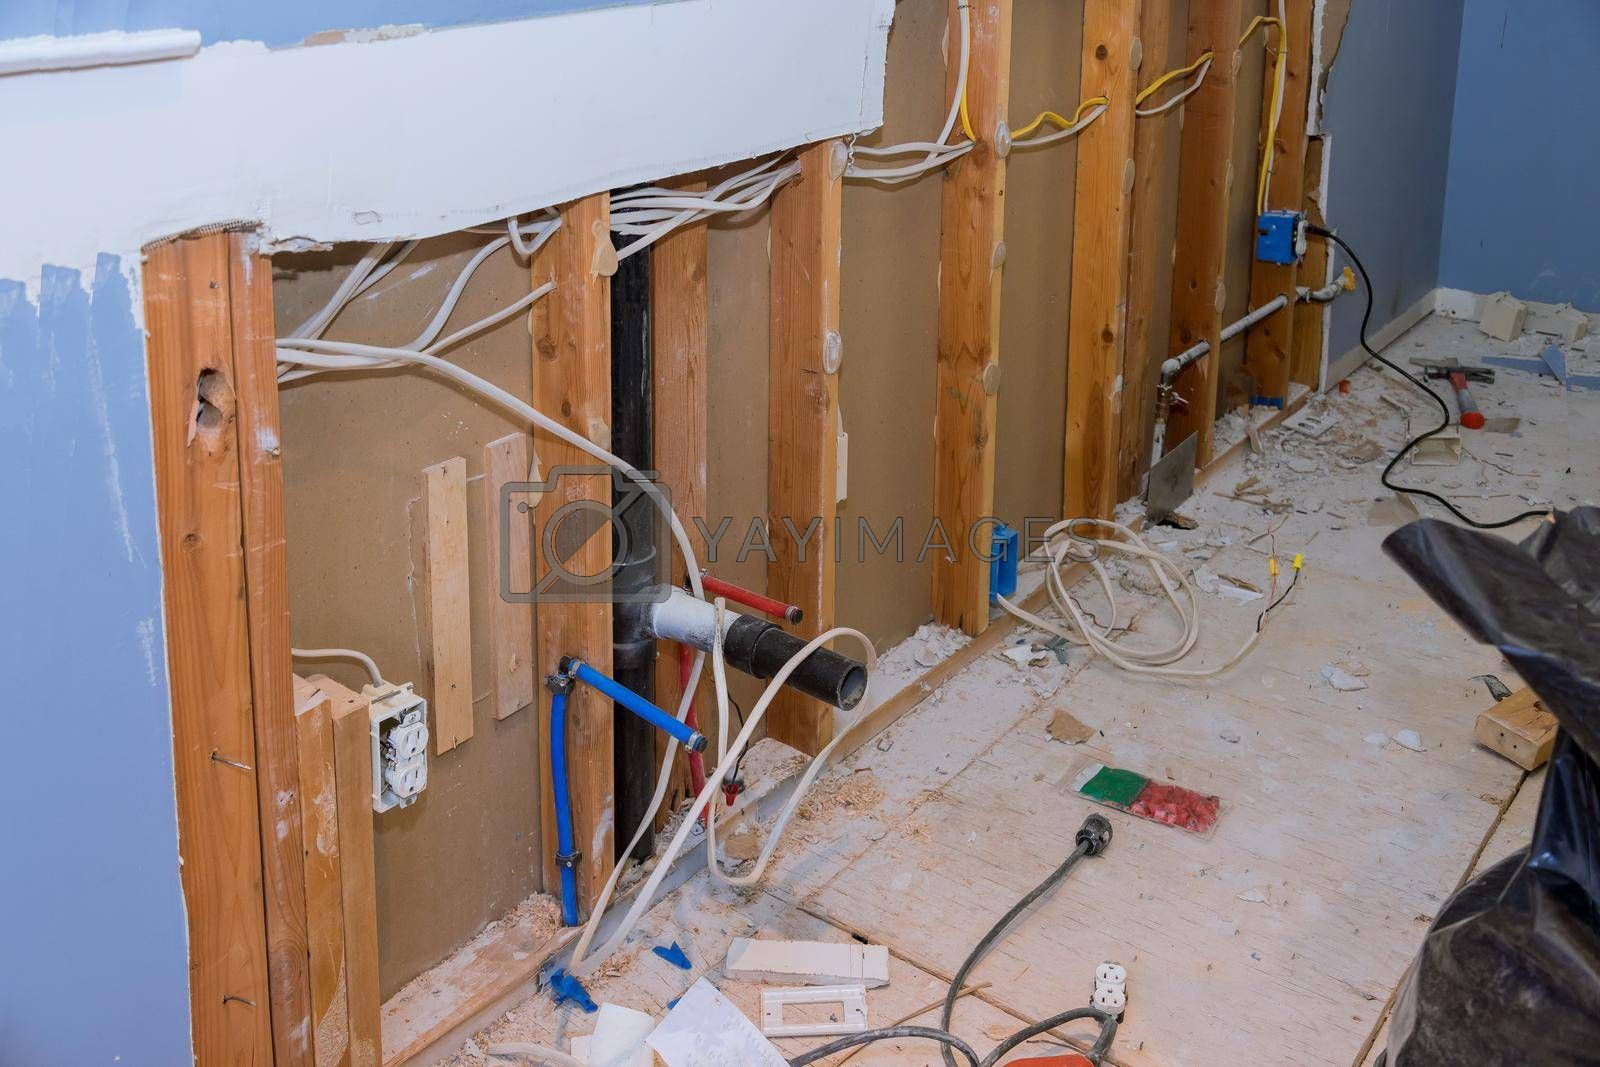 Kitchen remodel home improvement view with drywall demolition an interior wall